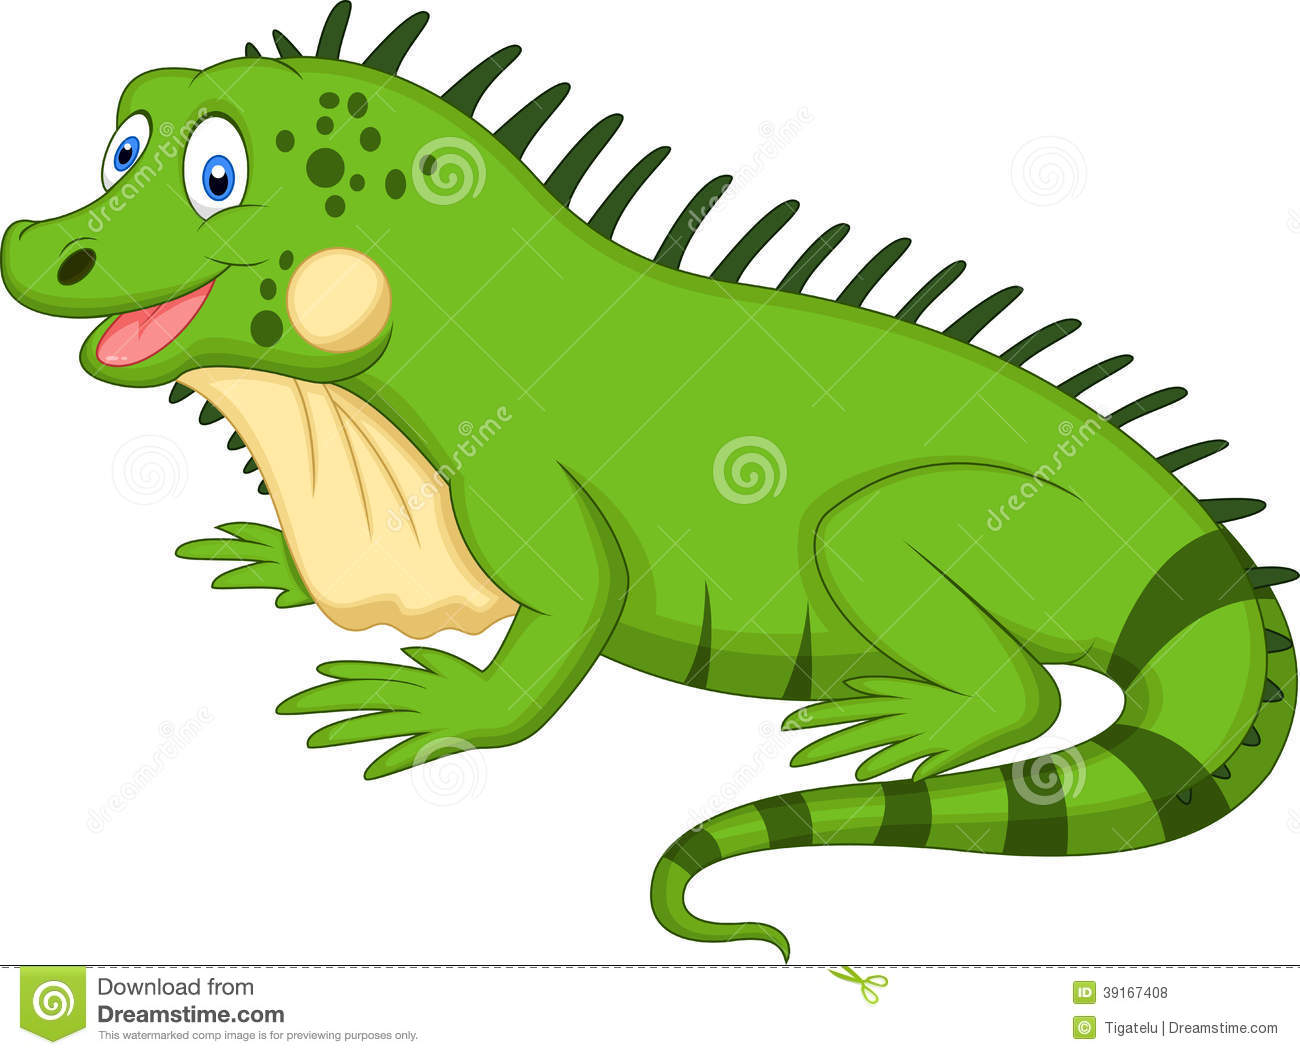 Cute Iguana Cartoon Stock Vector. Illustration Of Claws